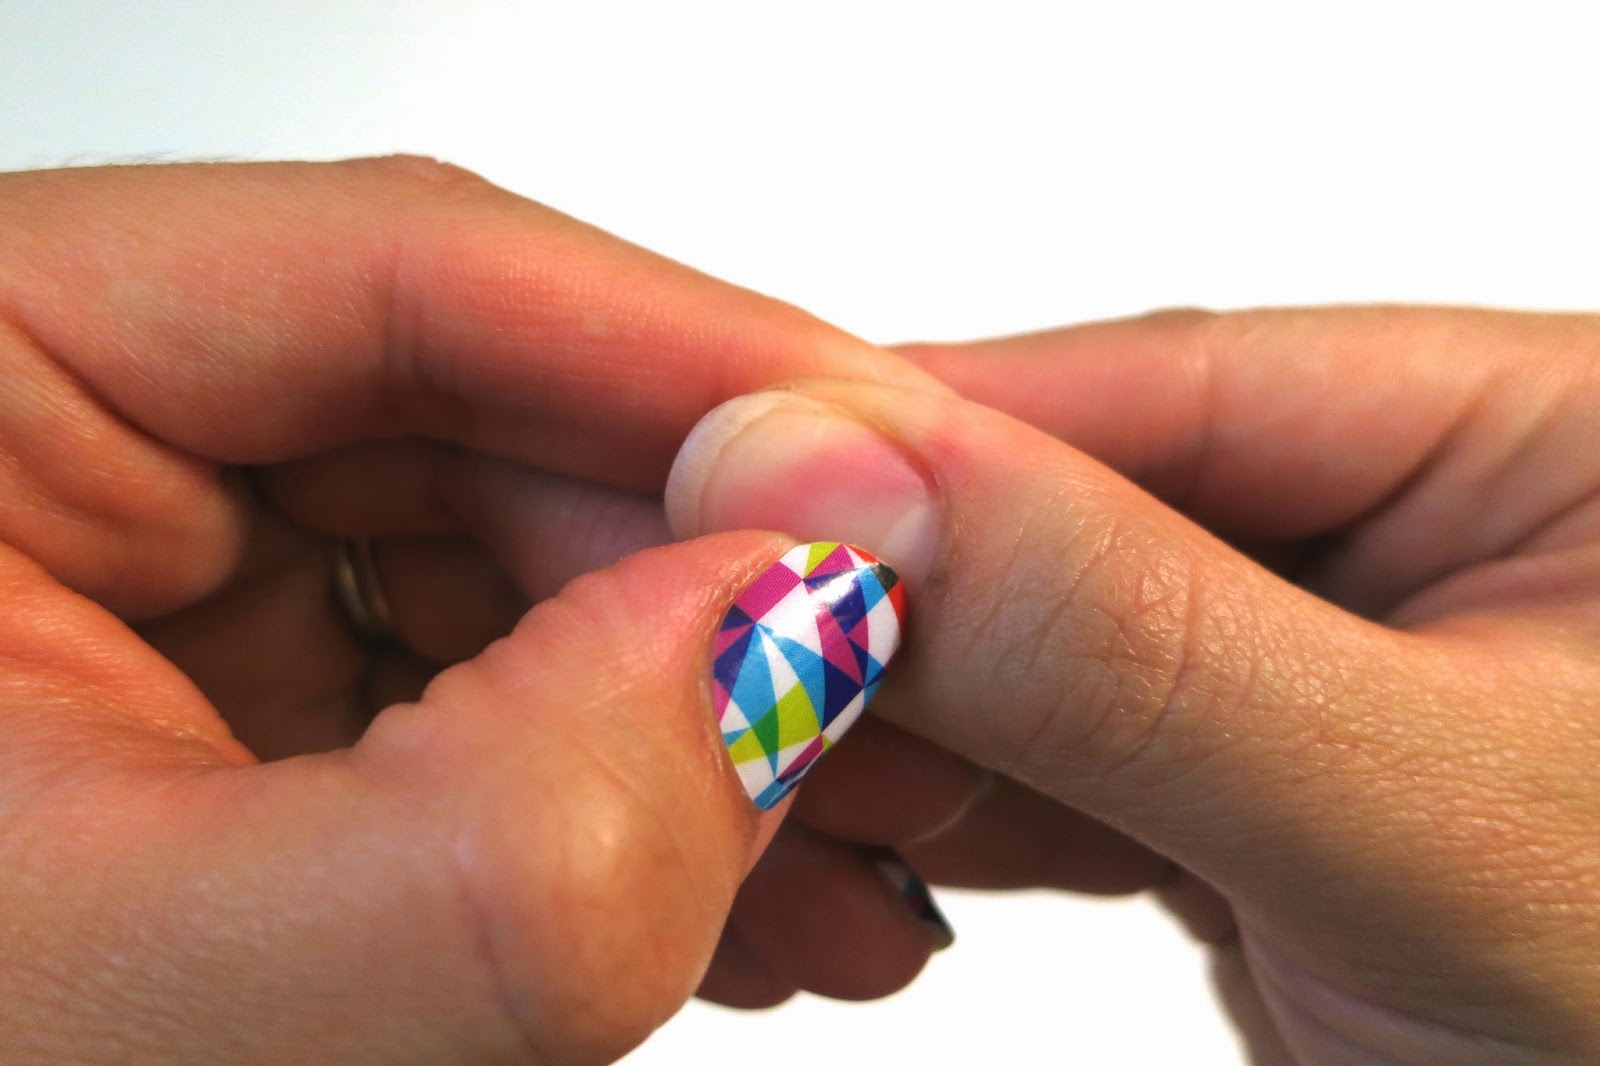 Mommyscape: [Nails] Jamberry: Taking care of your nails before ...